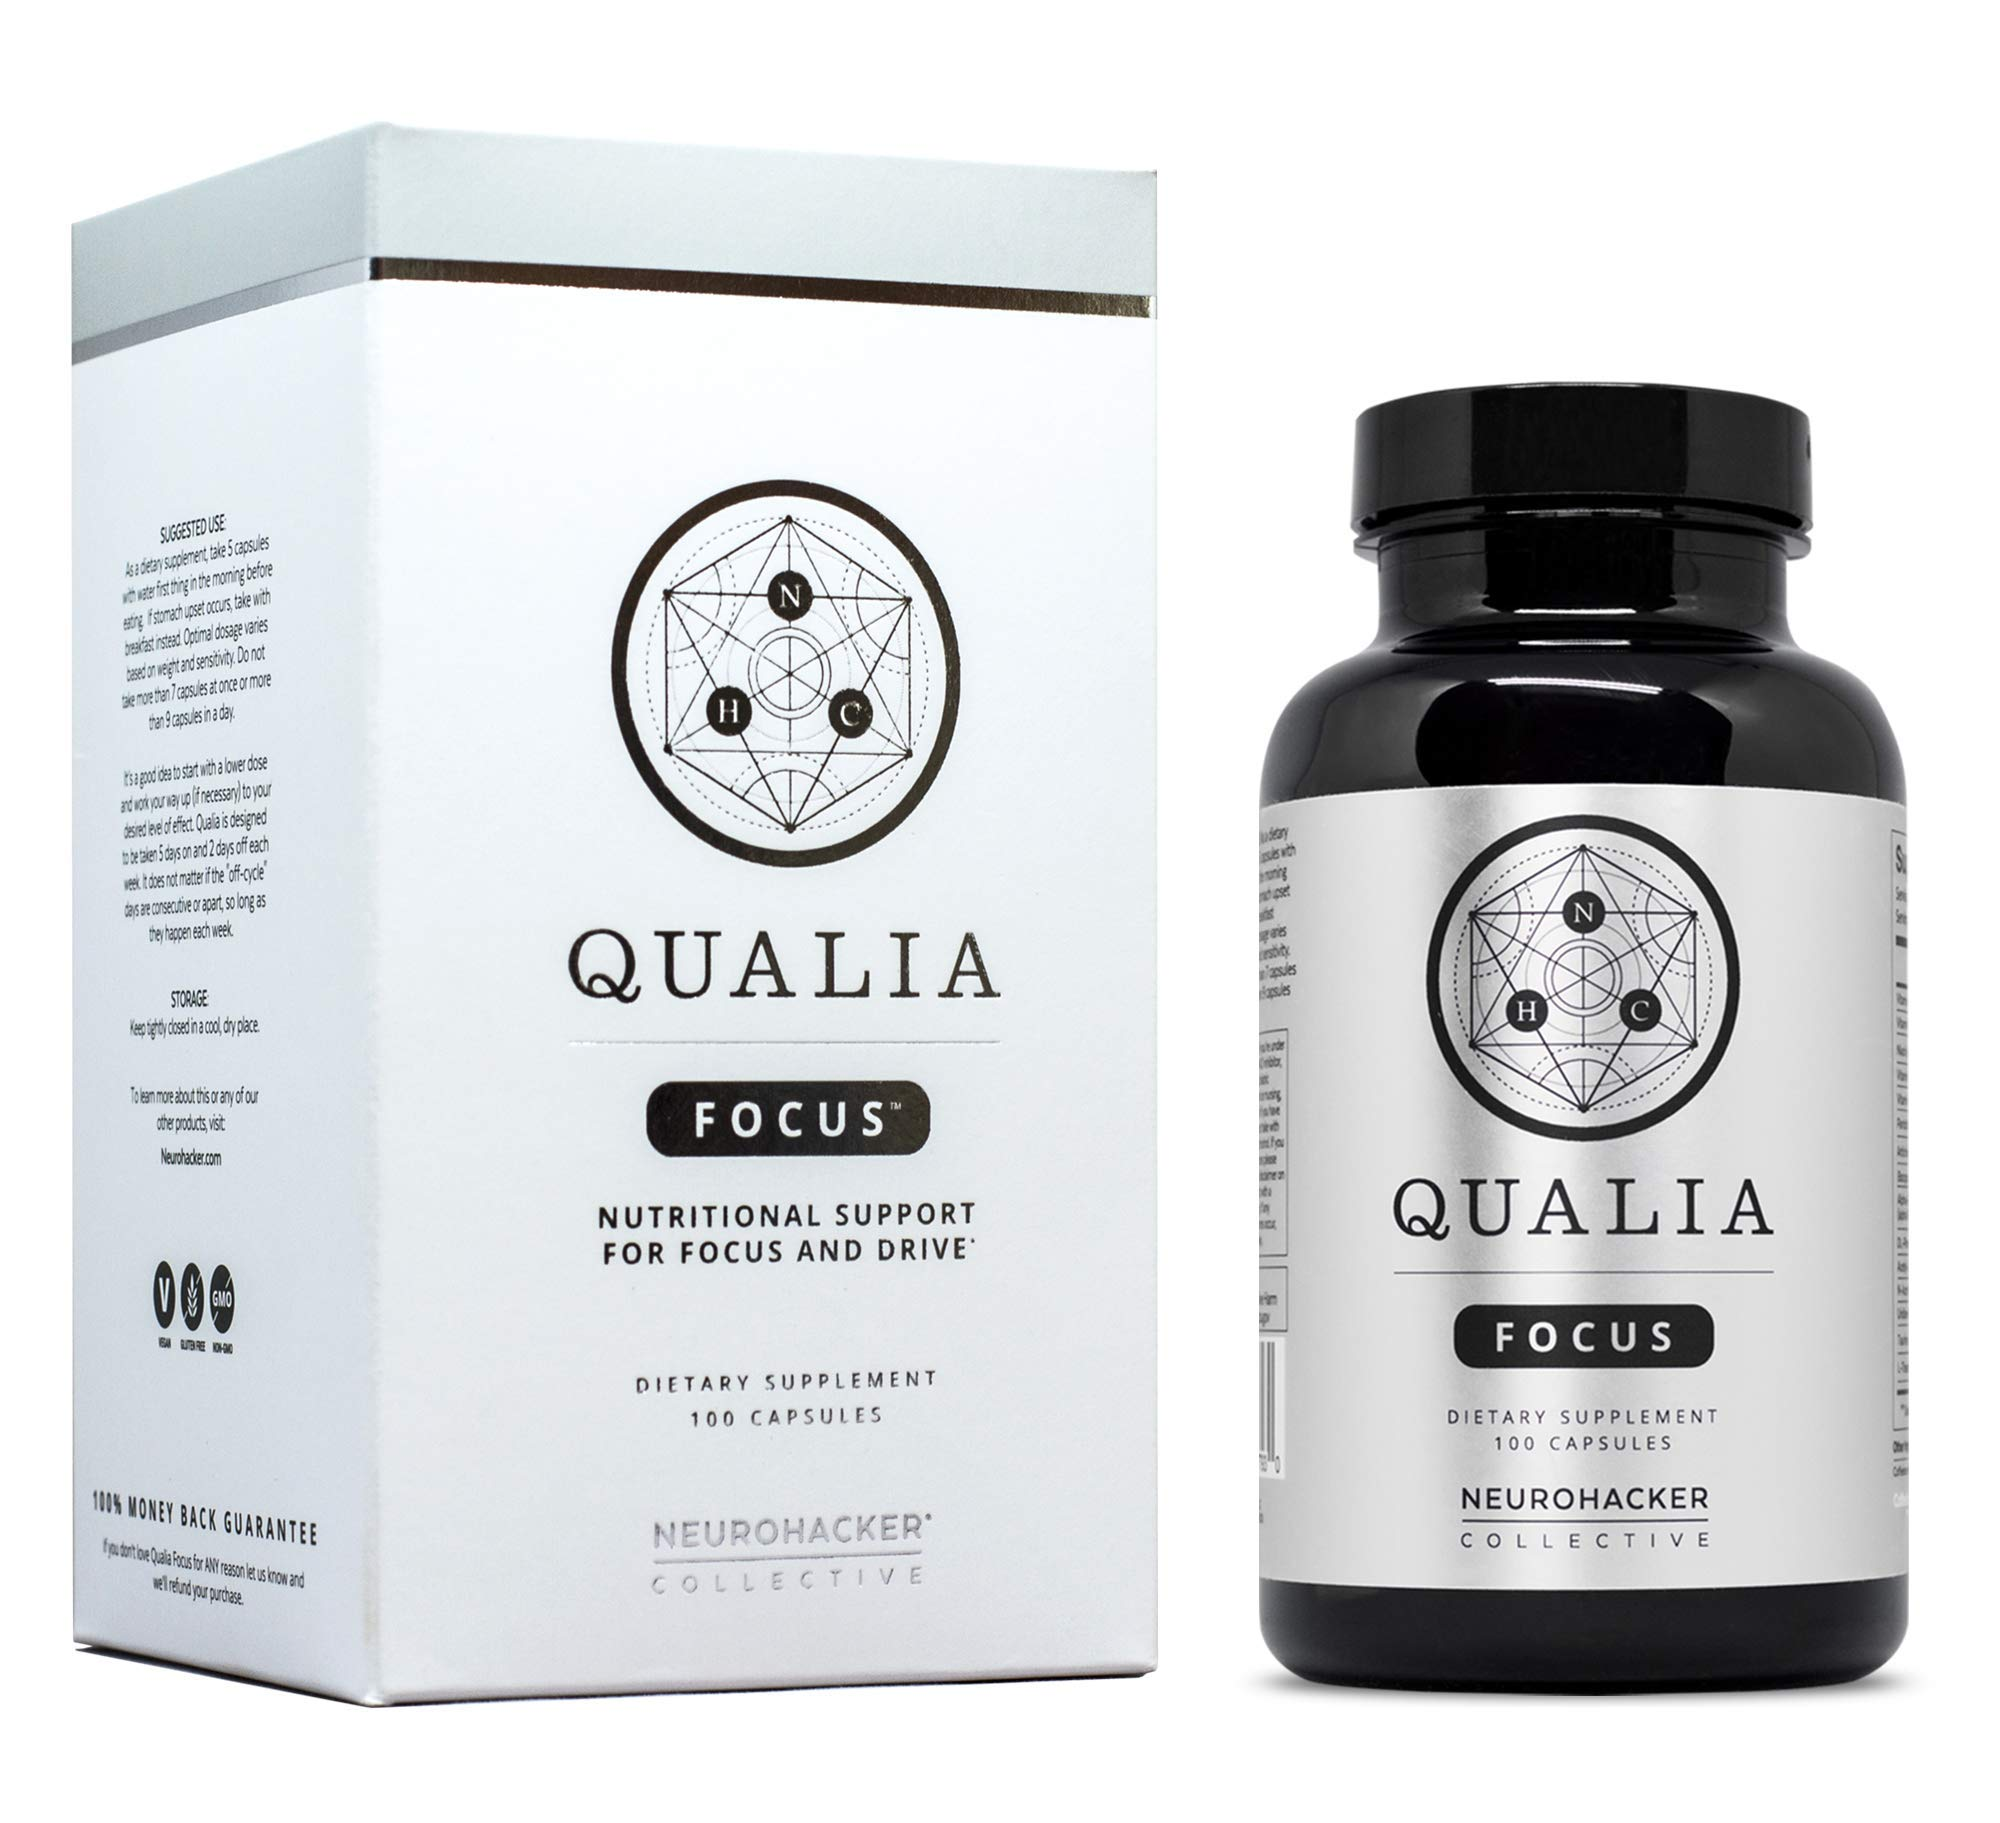 Qualia Focus Nootropics | The Brain Supplement for Focus, Supporting Memory, Mental Clarity, Energy, Reasoning, and Concentration with Ginkgo biloba, Bacopa monnieri, Celastrus, Rhodiola rosea & More